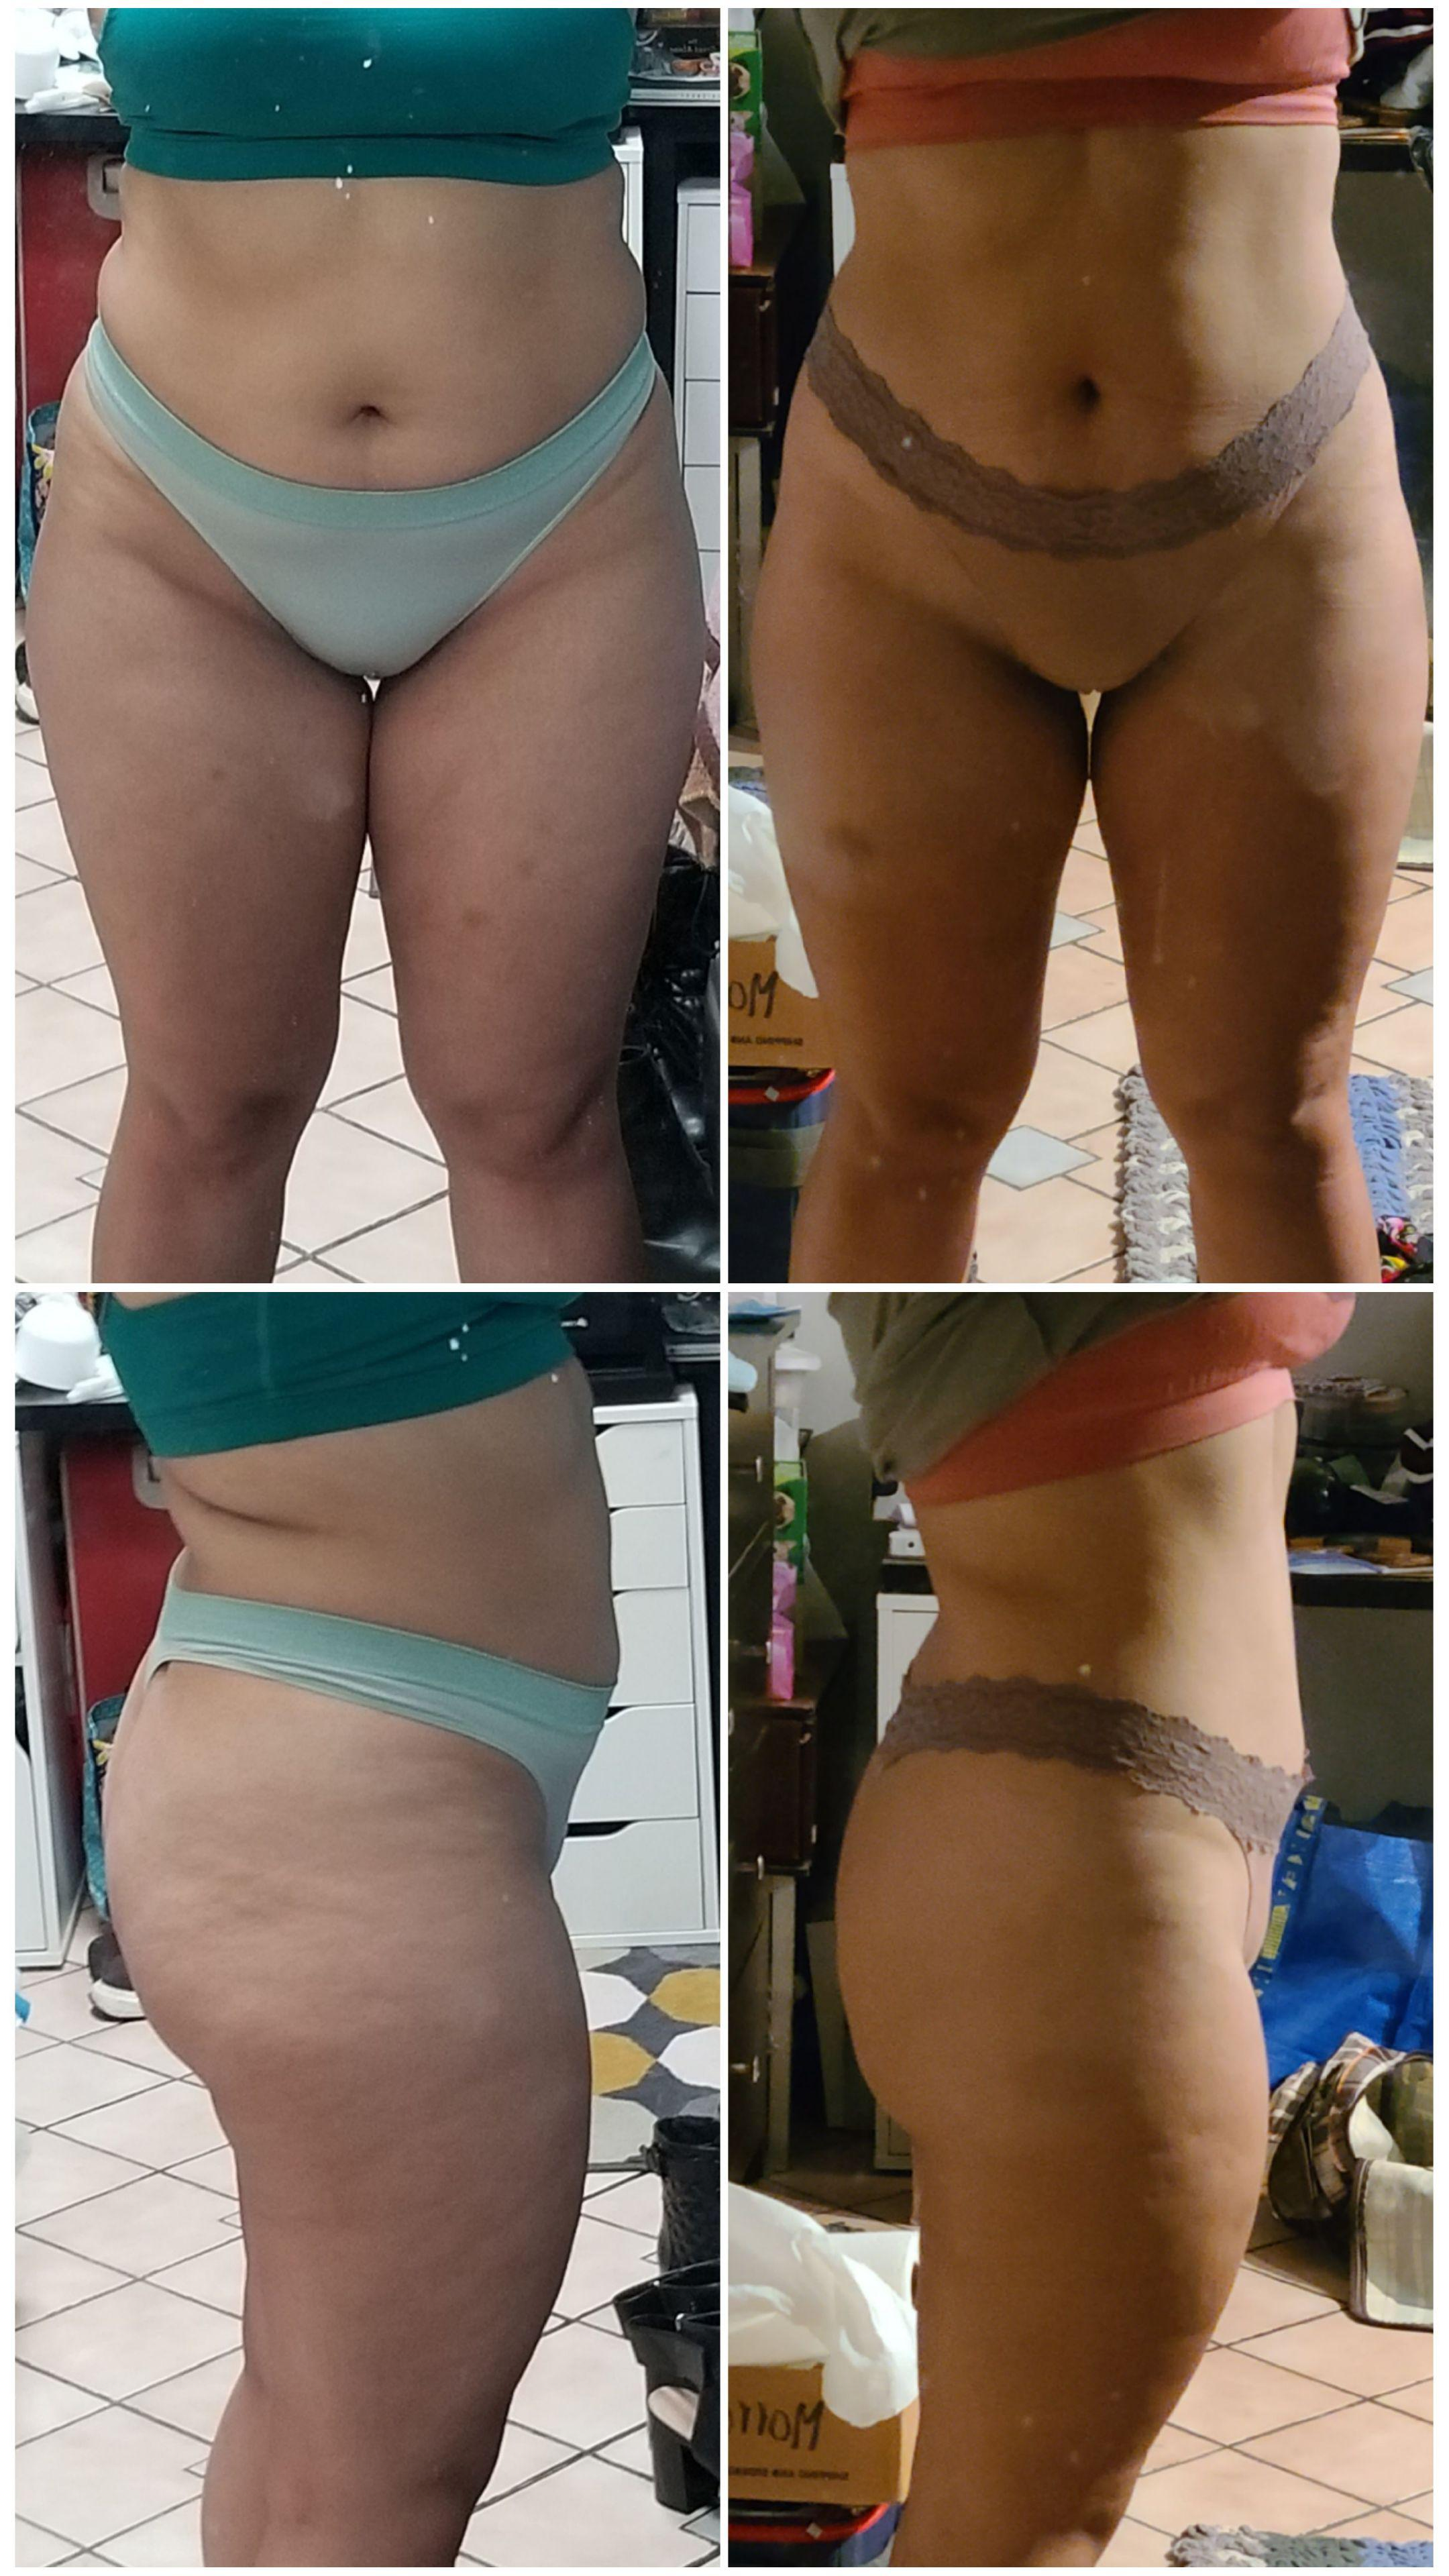 5 feet 5 Female Before and After 10 lbs Weight Loss 190 lbs to 180 lbs